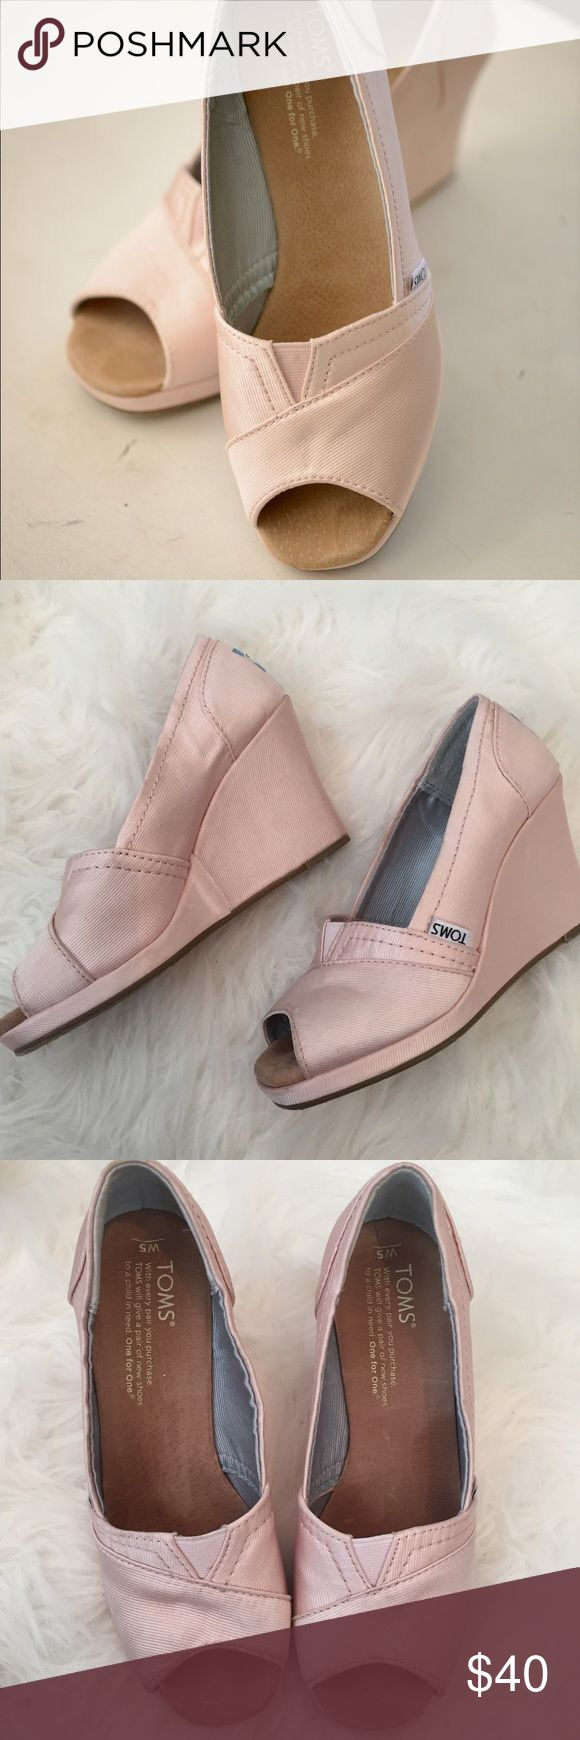 Blush Pink TOMS Wedges Super cute TOMS open-toe blush pink wedges. Worn 1x for a day. Worn for a wedding- so comfy! TOMS Shoes Wedges